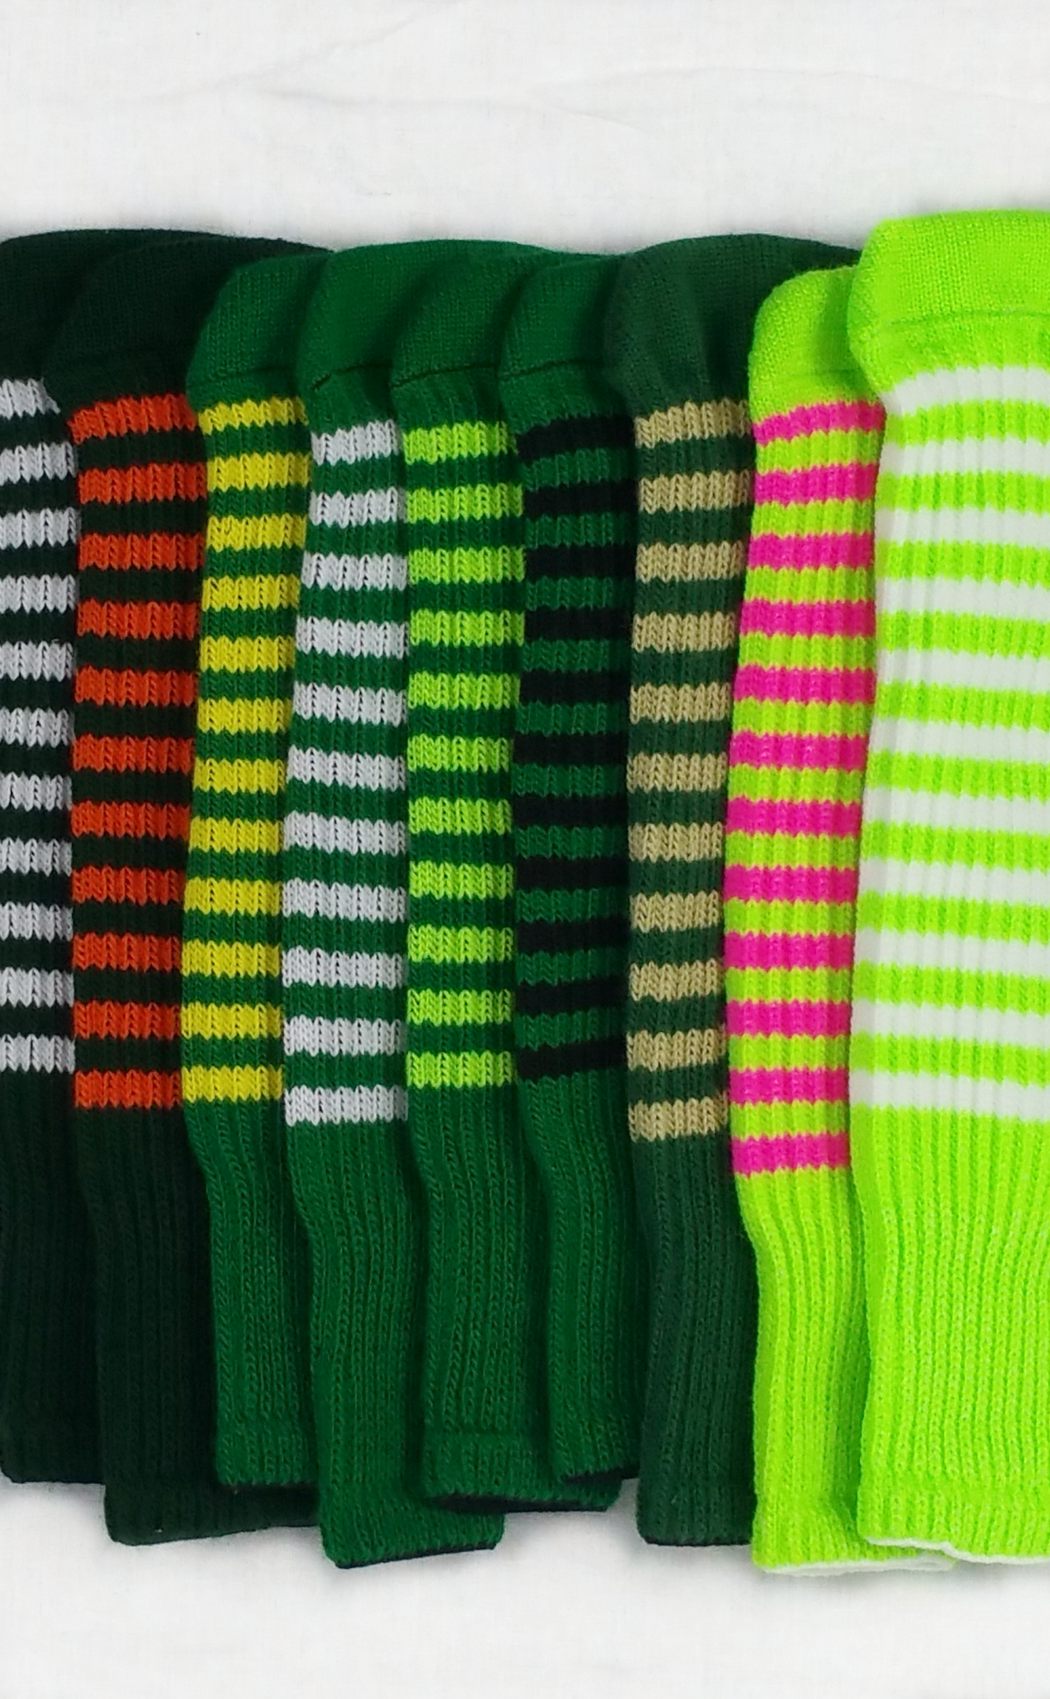 Green Club Sock Golf Headcovers | Peanuts and Golf